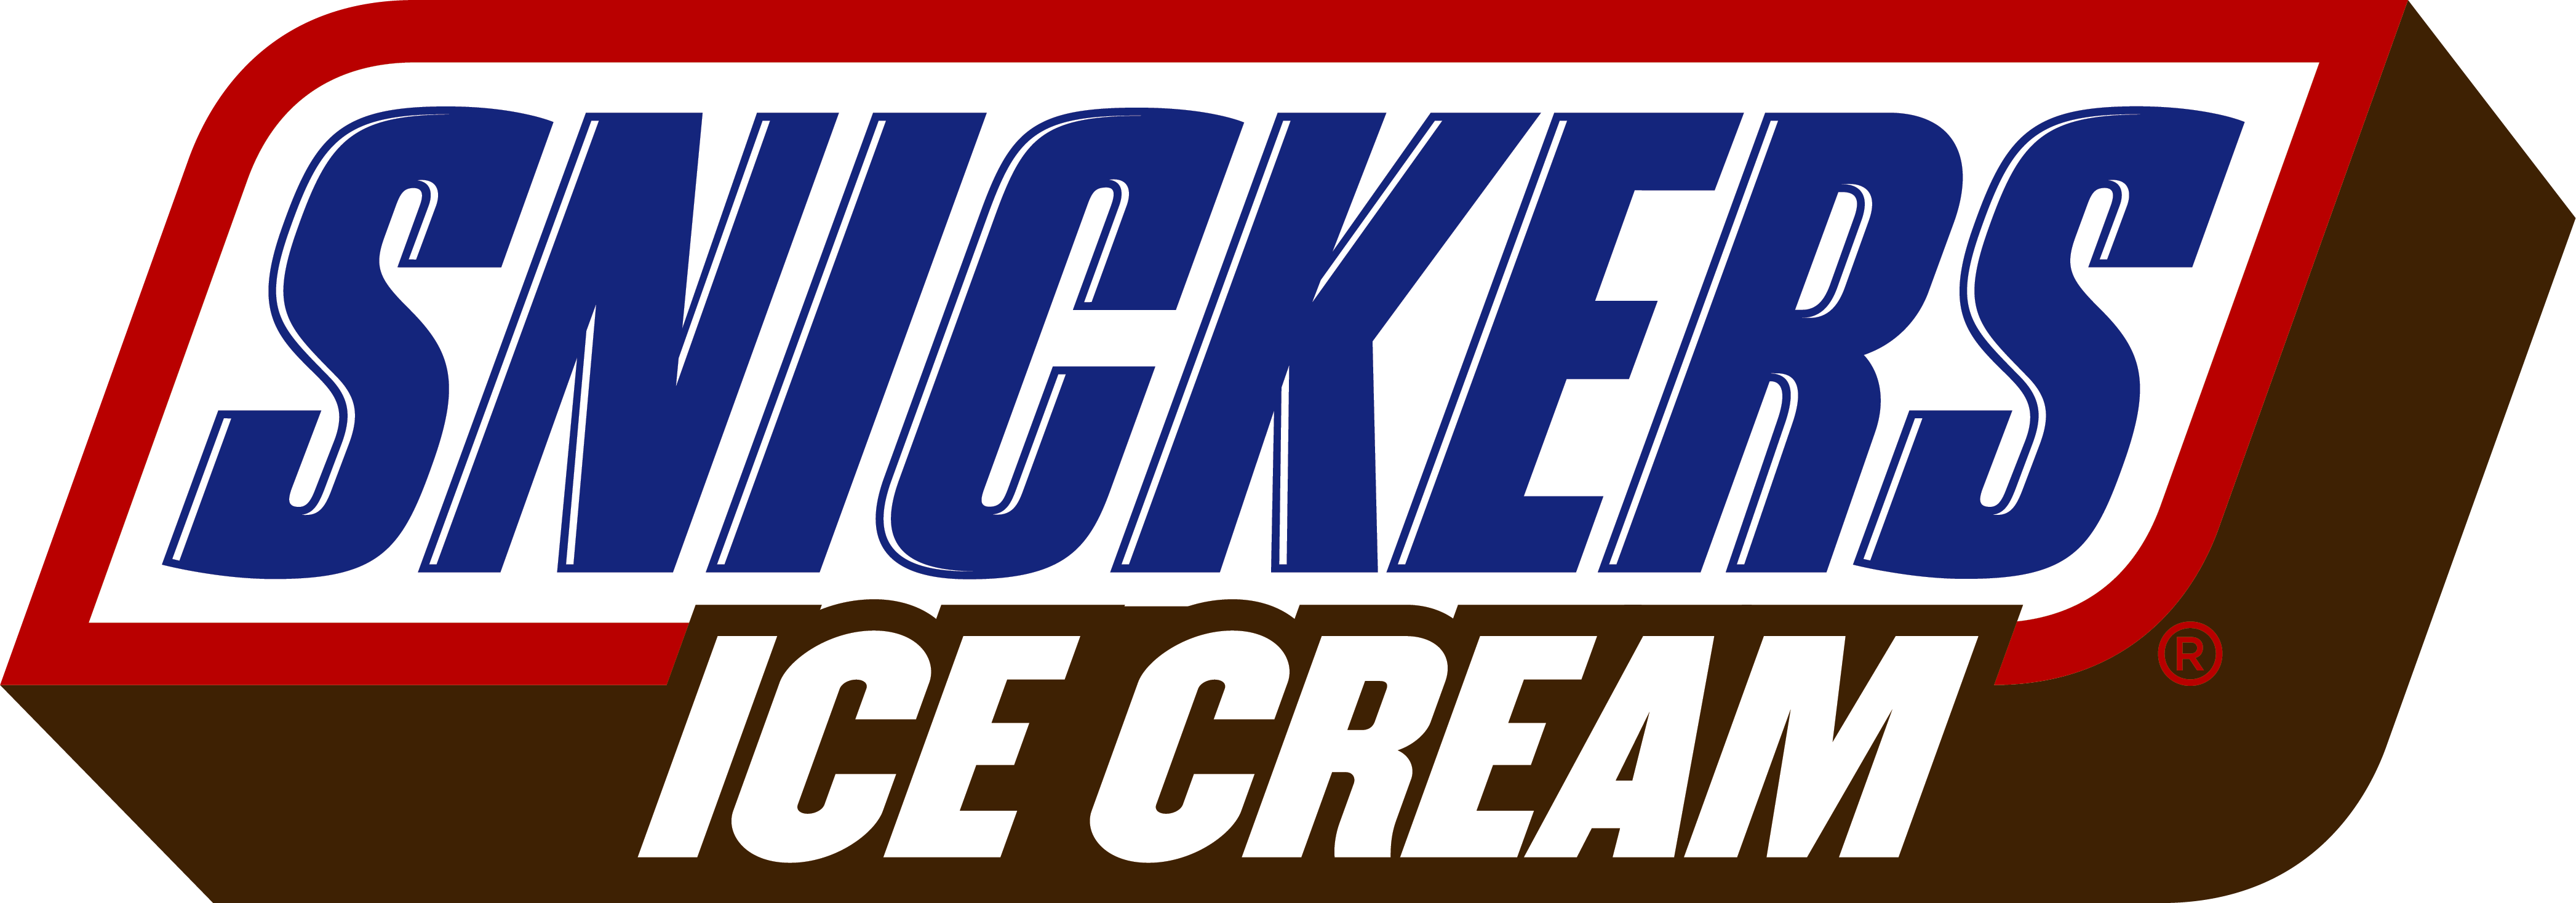 Snickers Ice Cream Logo 2019